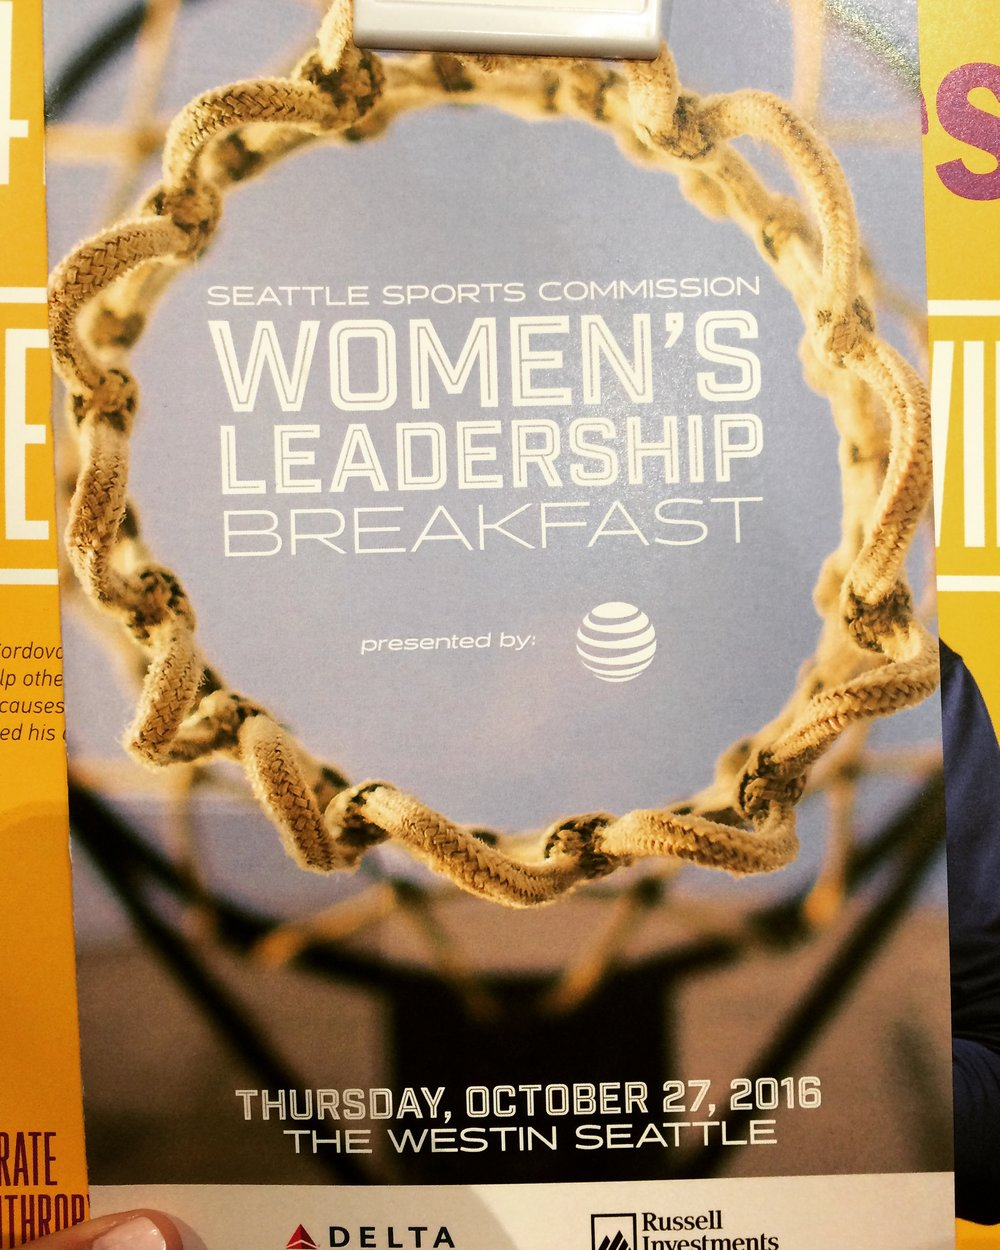 The Seattle Women's Leadership Breakfast gave women the chance to learn from and network with top female executives in the area.